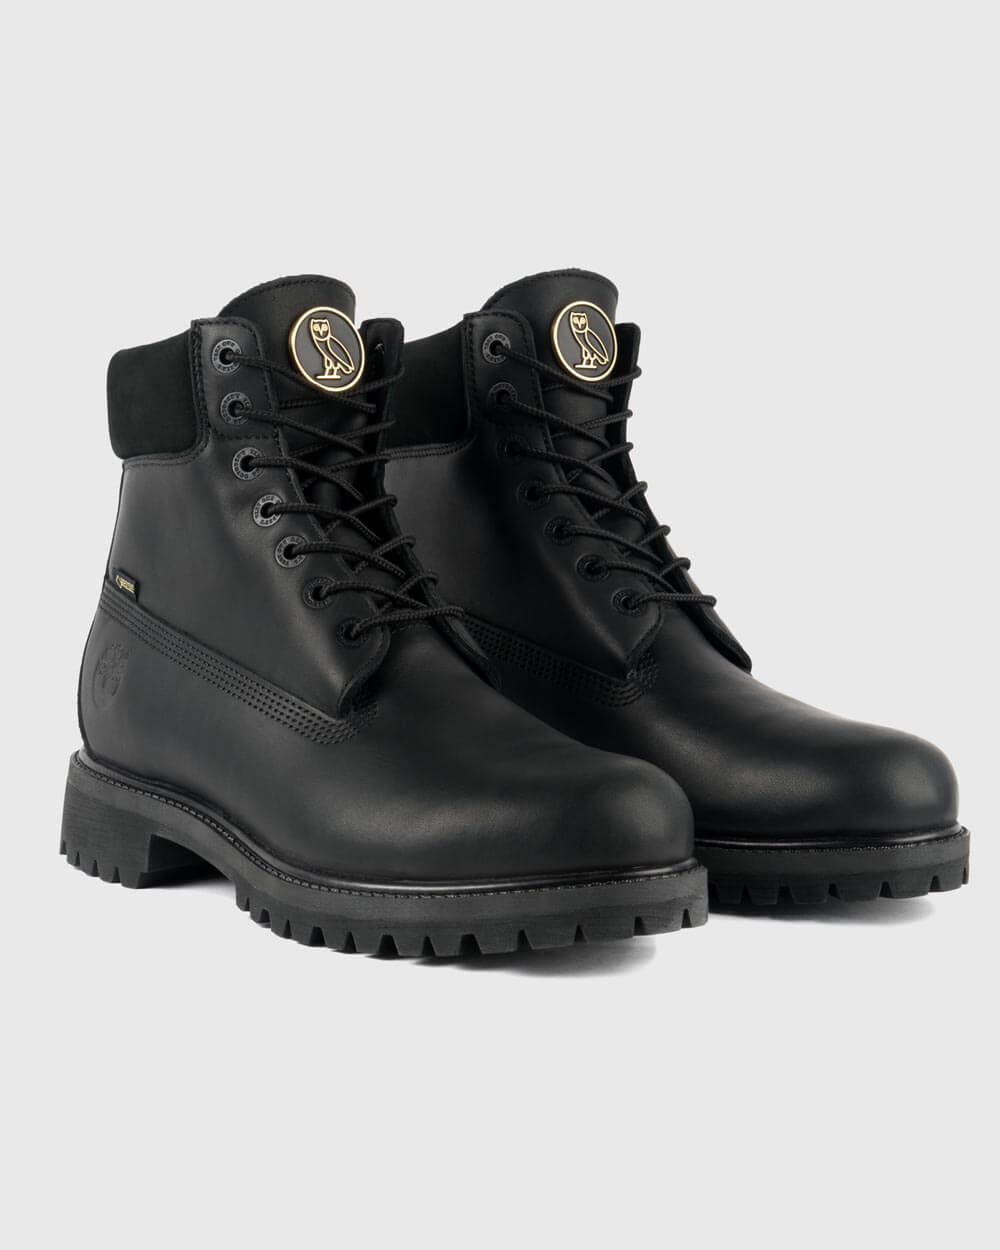 00d7f58a97a3 OVO x TIMBERLAND 6-INCH - BLACK – October s Very Own Online US